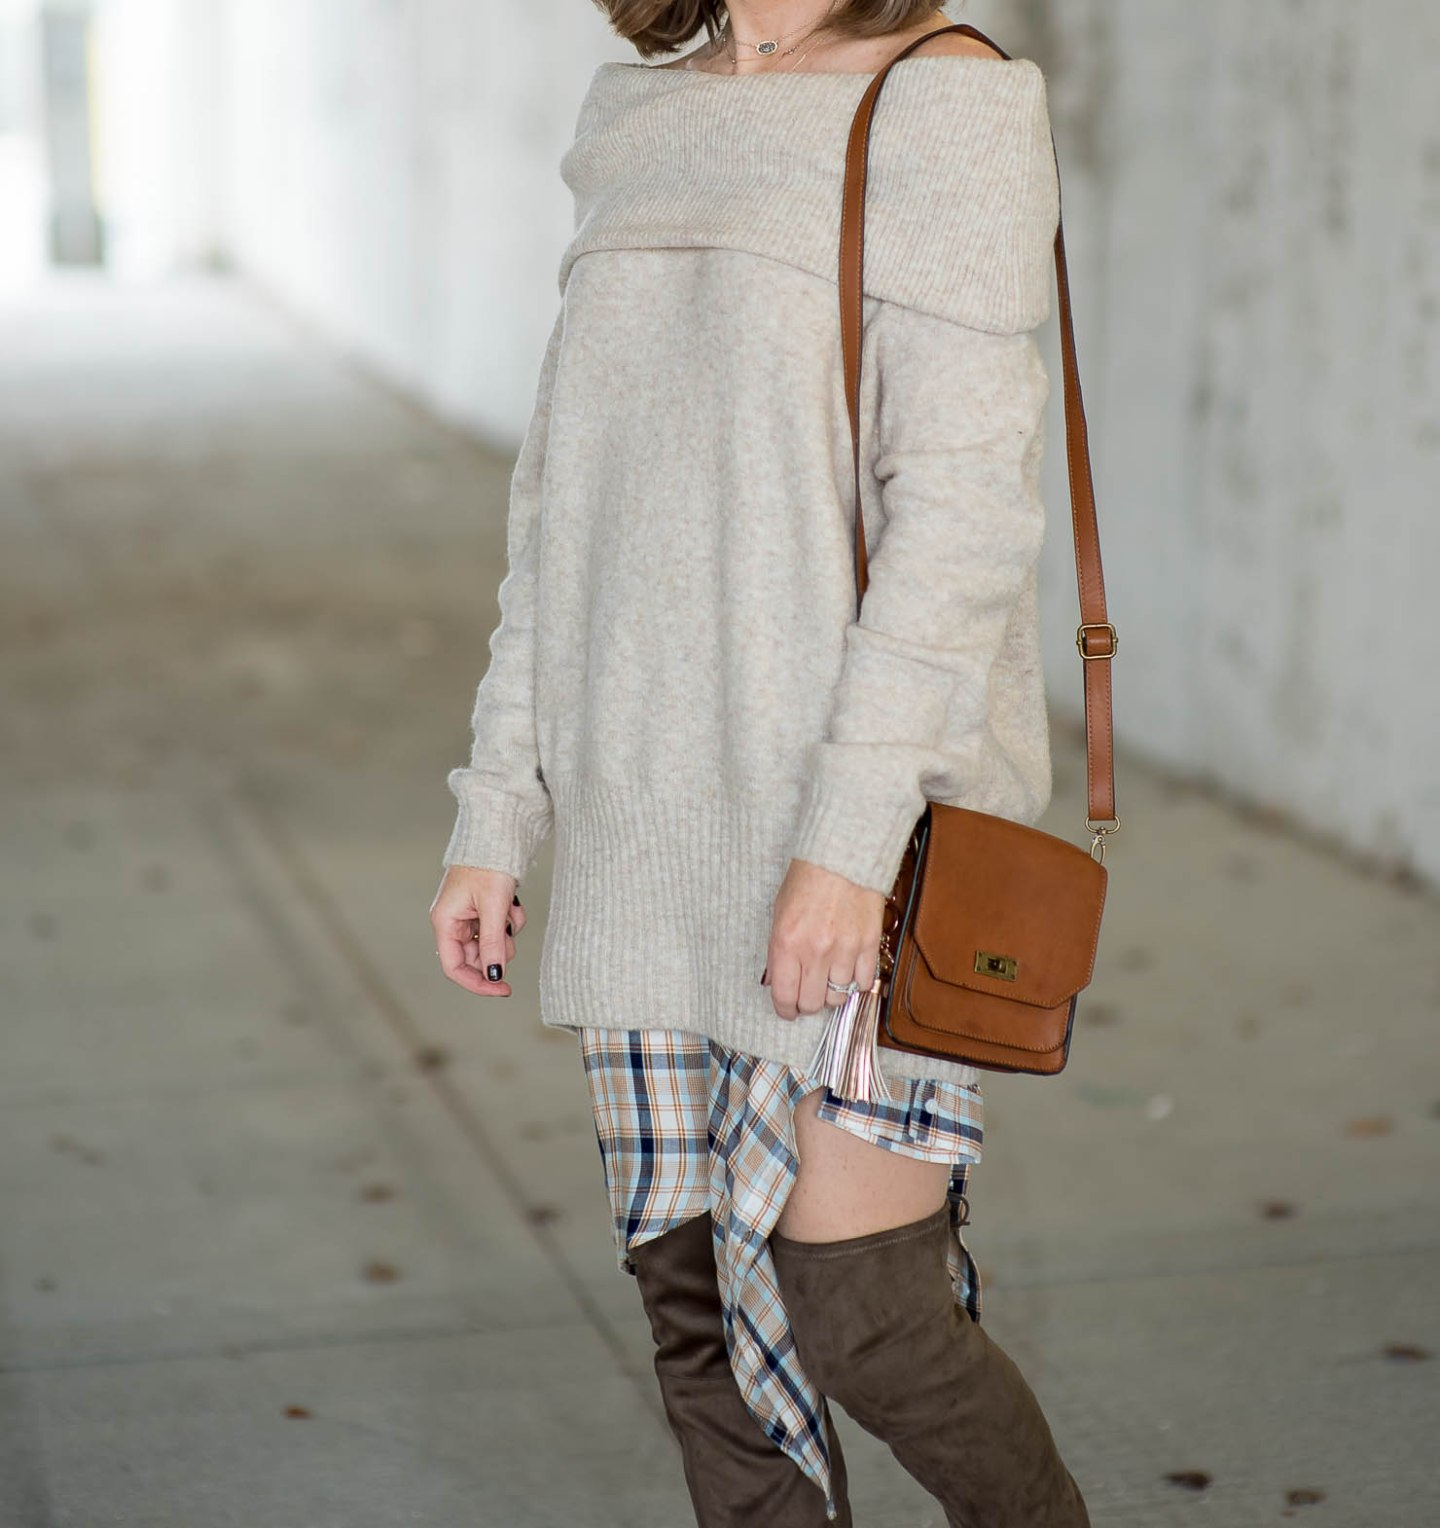 thanksgiving-outfit-idea-oversized-off-the-shoulder-sweater-over-plaid-shirt-the-best-ever-over-the-knee-boots-marc-fisher-alinda-boots